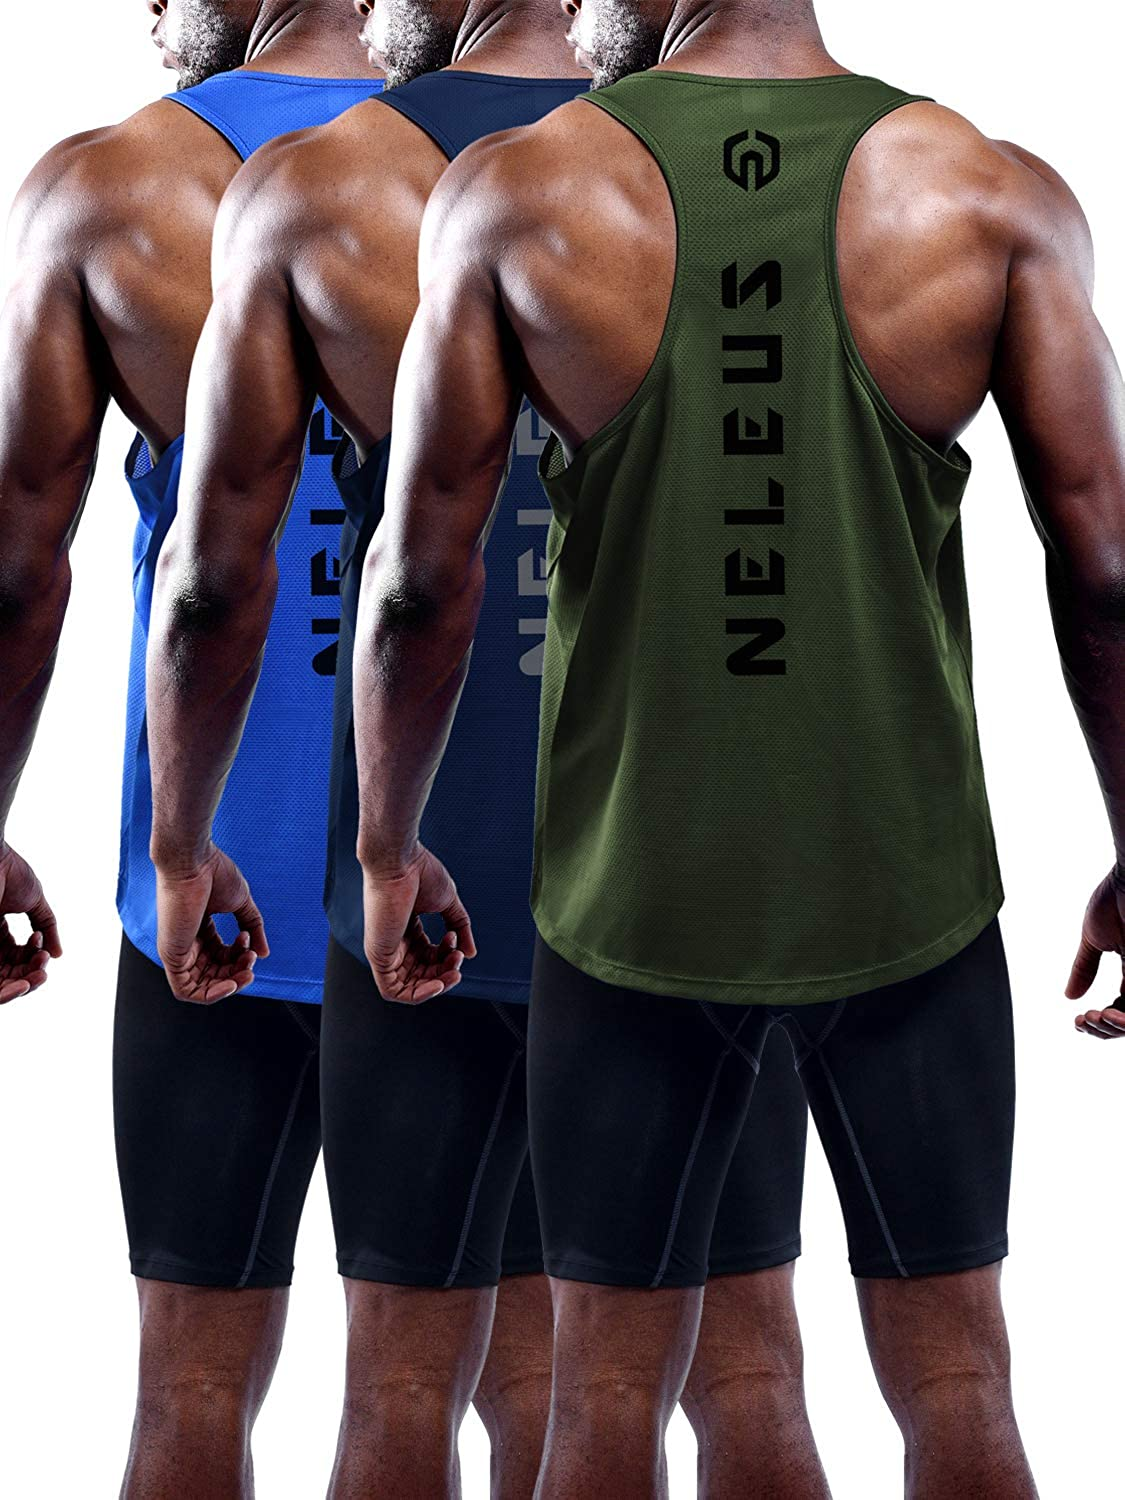 Neleus Men's 3 Pack Dry Top Tank Fit Japan Maker New Y-Back Outlet ☆ Free Shipping Muscle